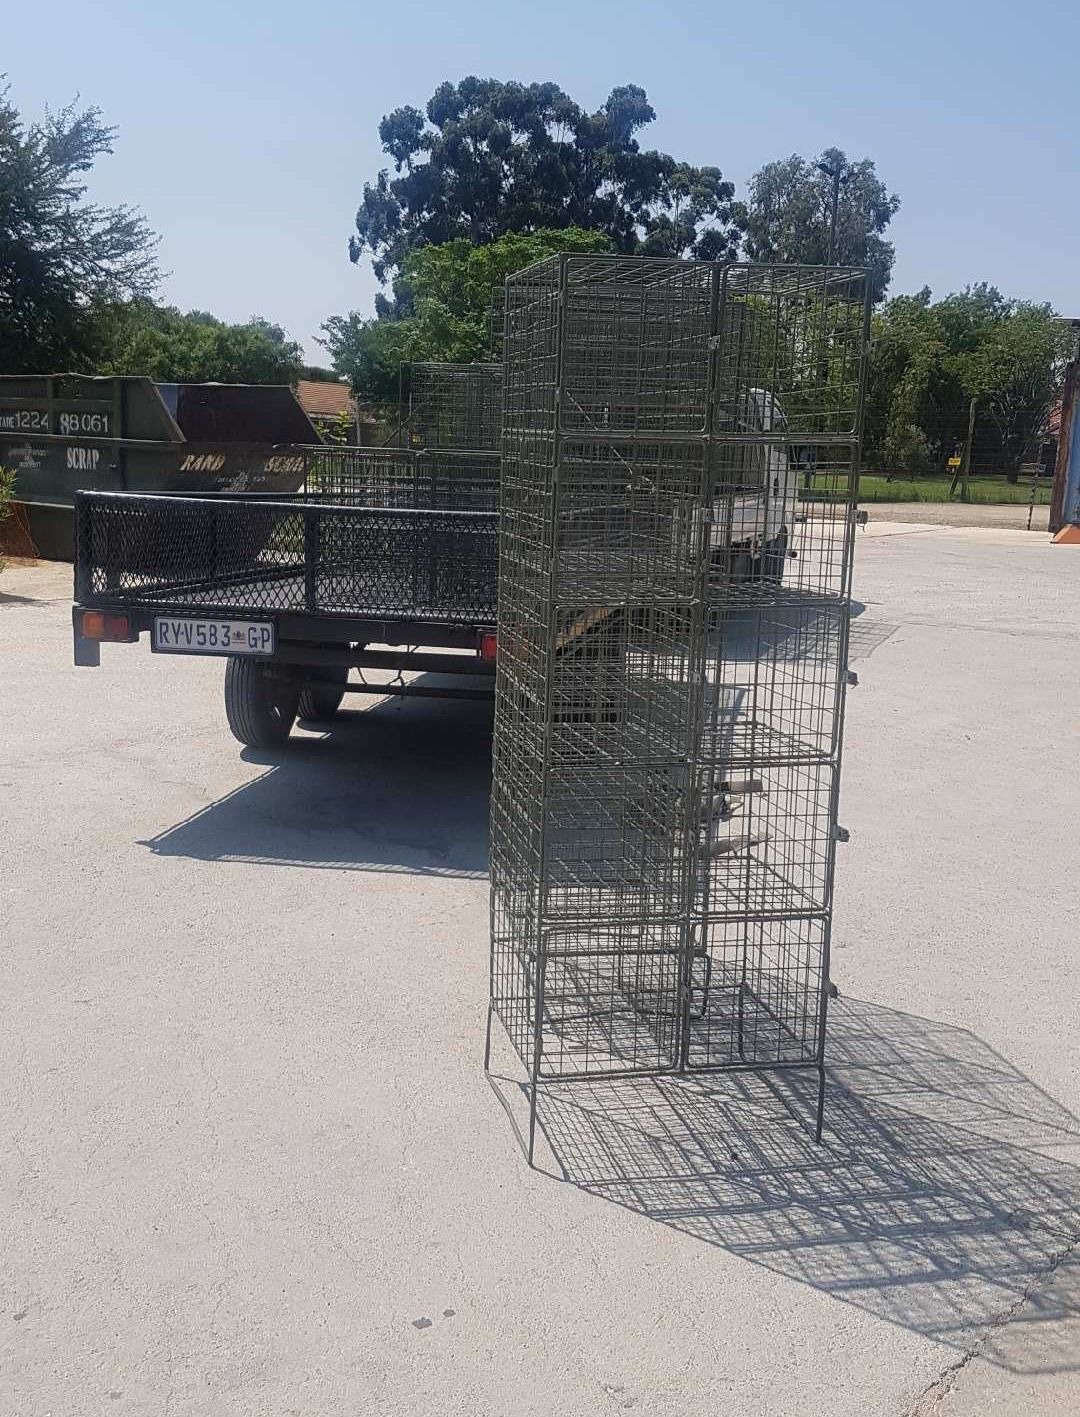 Shelf Rack, New And Used Racking, Beams, Frames, Pallets, Decks, New And Used Shelving, Small Parts Storage Systems, Mezzanine Floors, Work Benches, Automobile Assembly Line Parts Trolleys, Custom Made Wire Workers Lockers